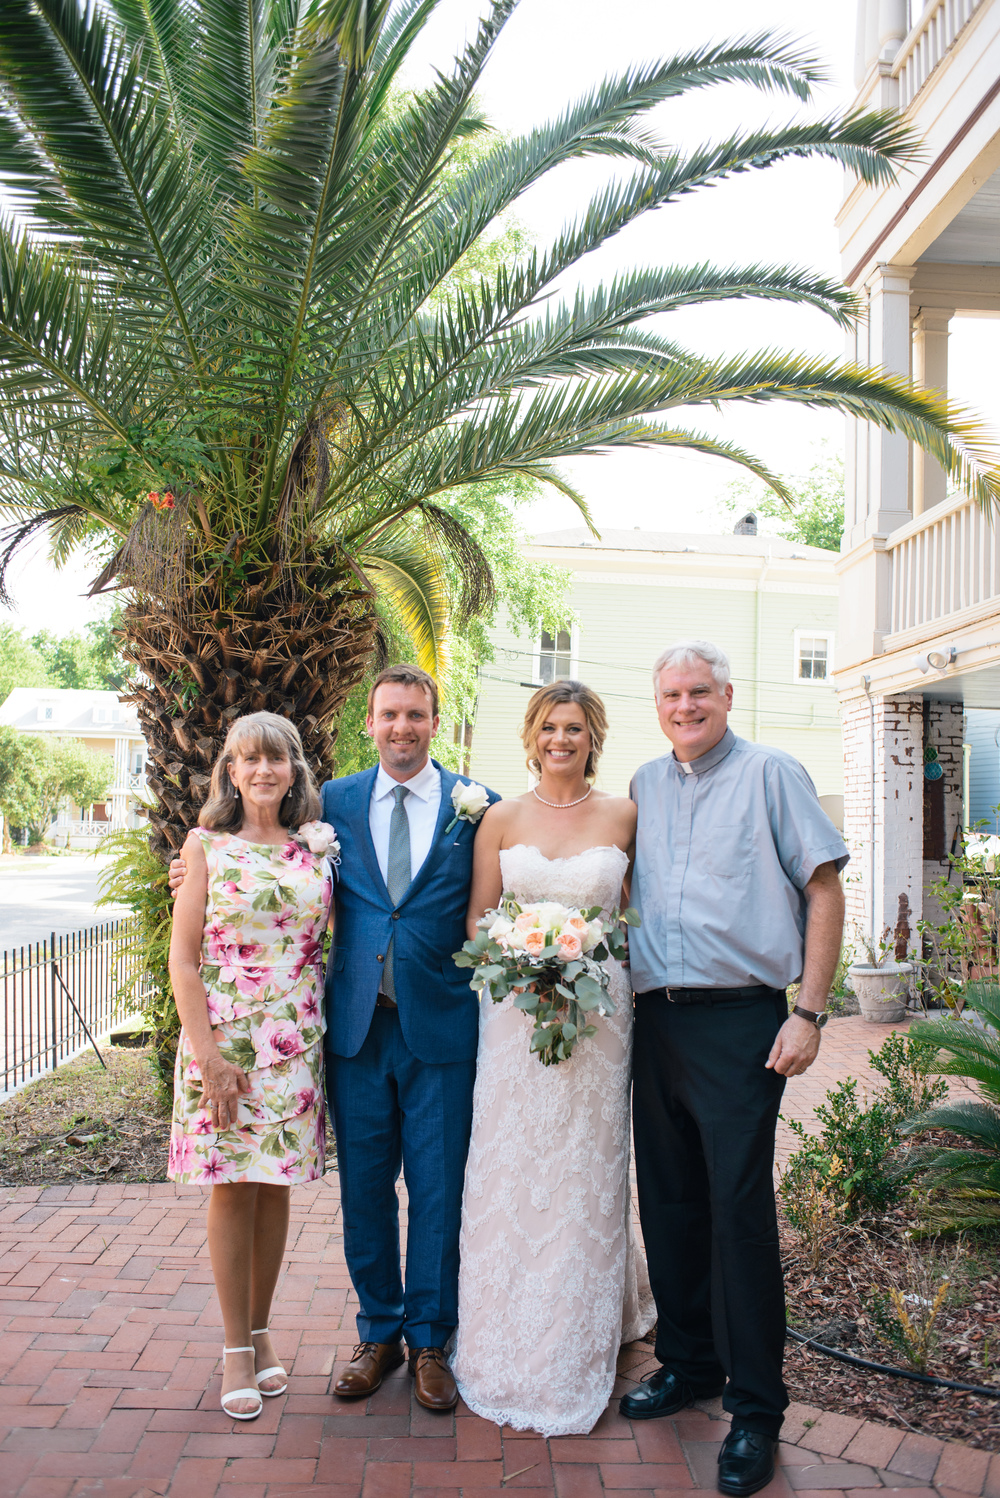 kacey-and-niall-June-4-savanna-georgia-wedding-m-newsom-photography- (386 of 961).jpg